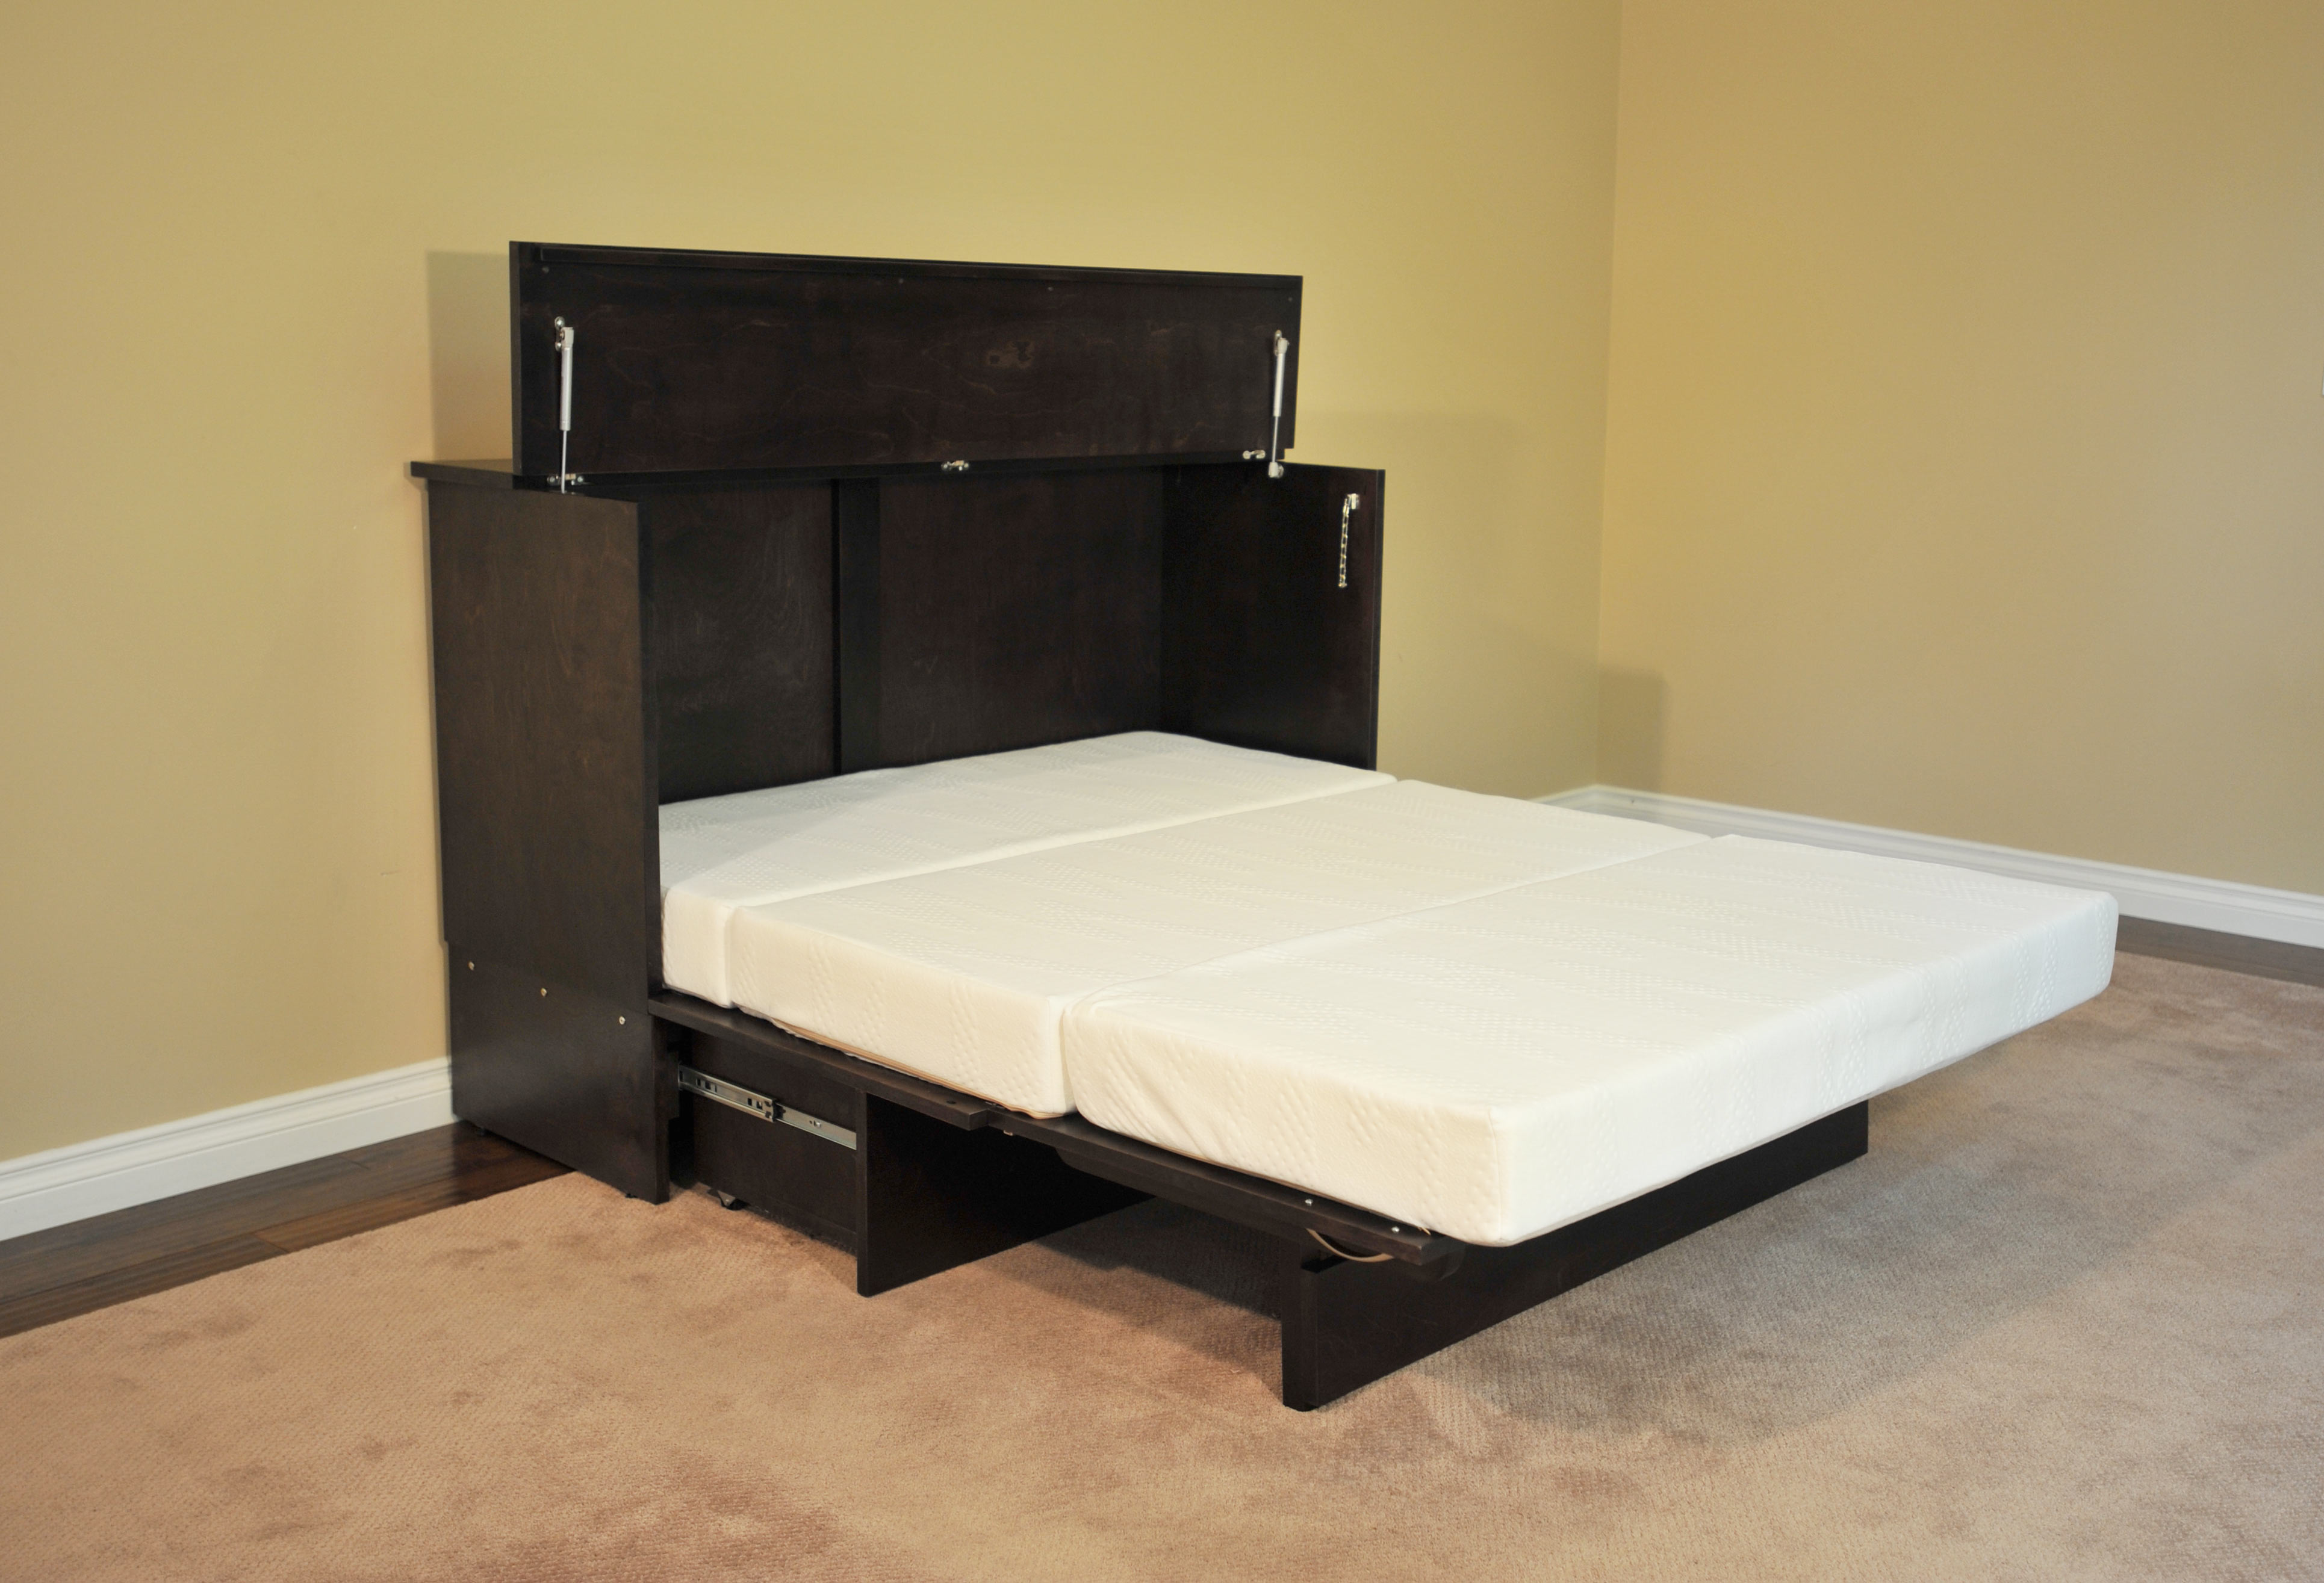 Stanley Deluxe Cabinet Bed Murphy Bed By Cabinetbed